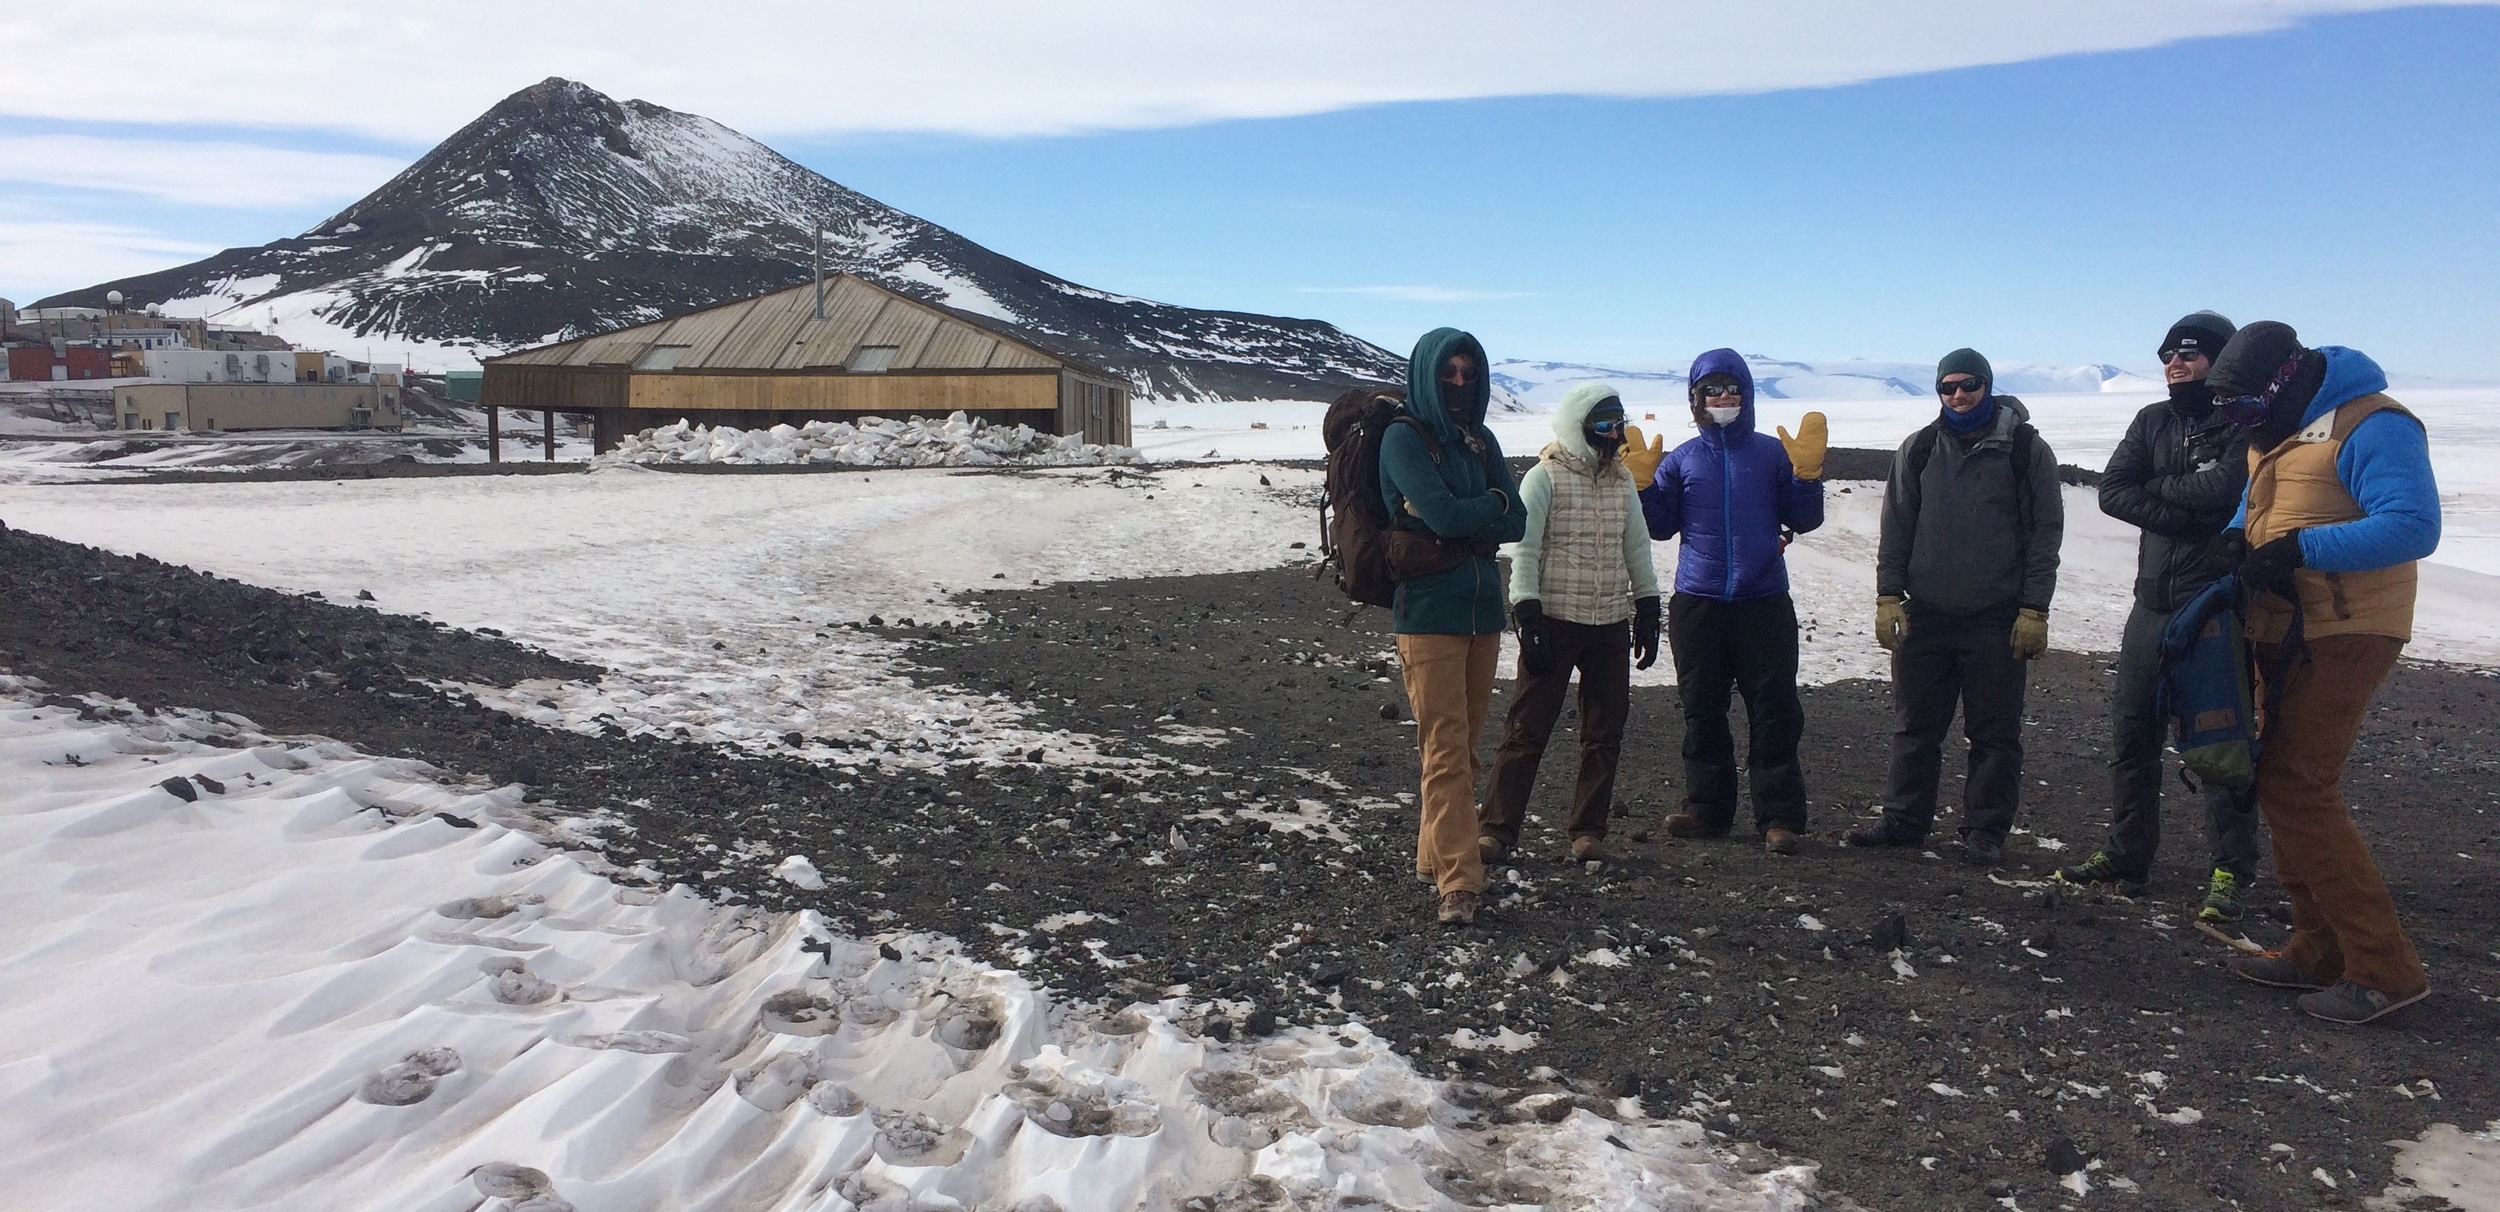 Our brave crew, Discovery Hut in the background.